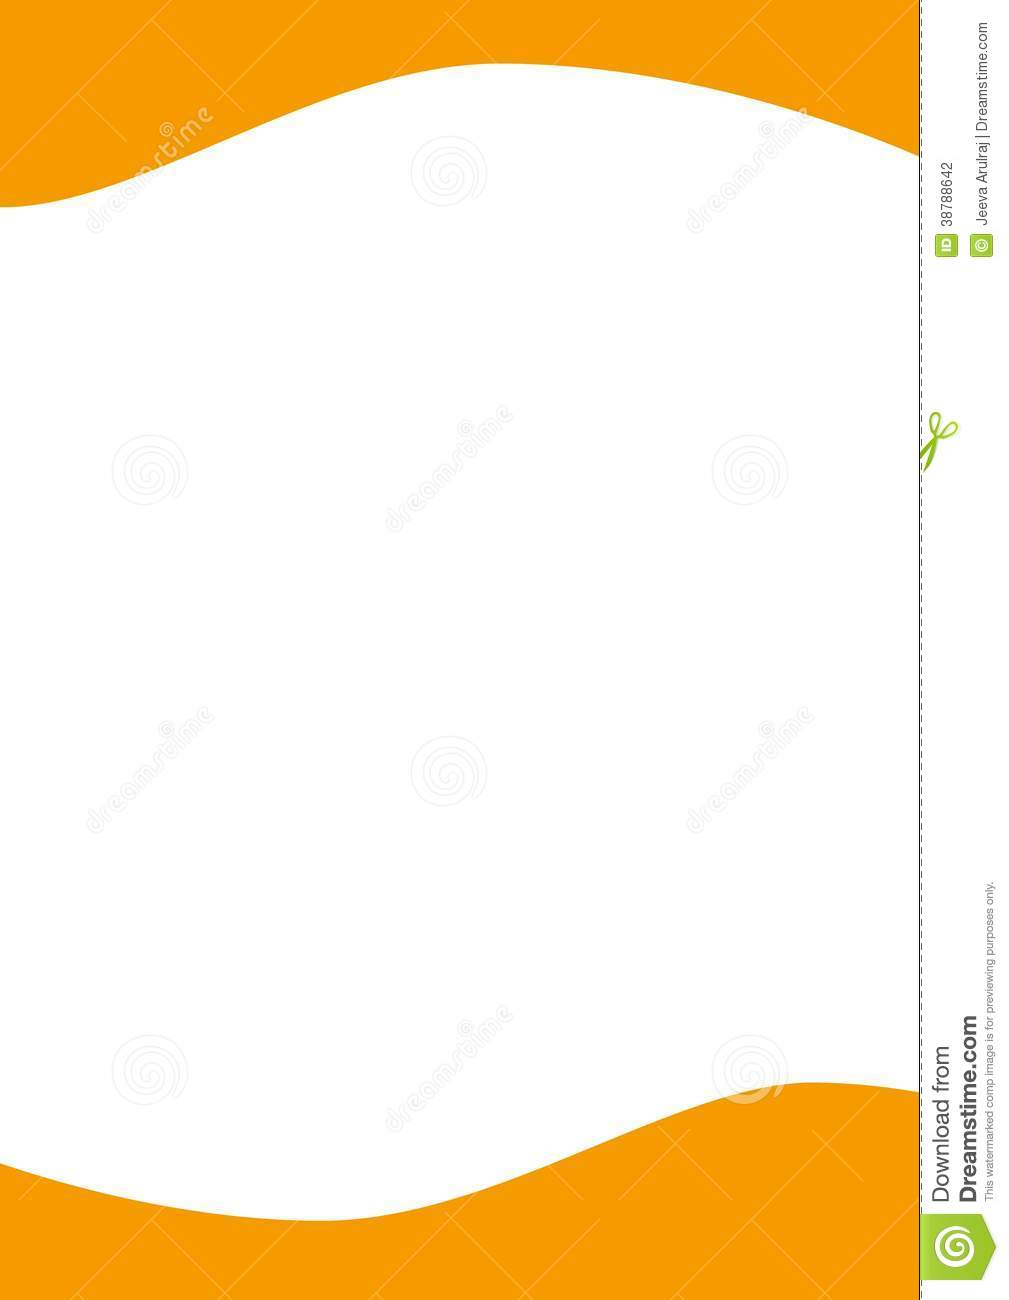 Letterhead Stock Illustration Image 38788642